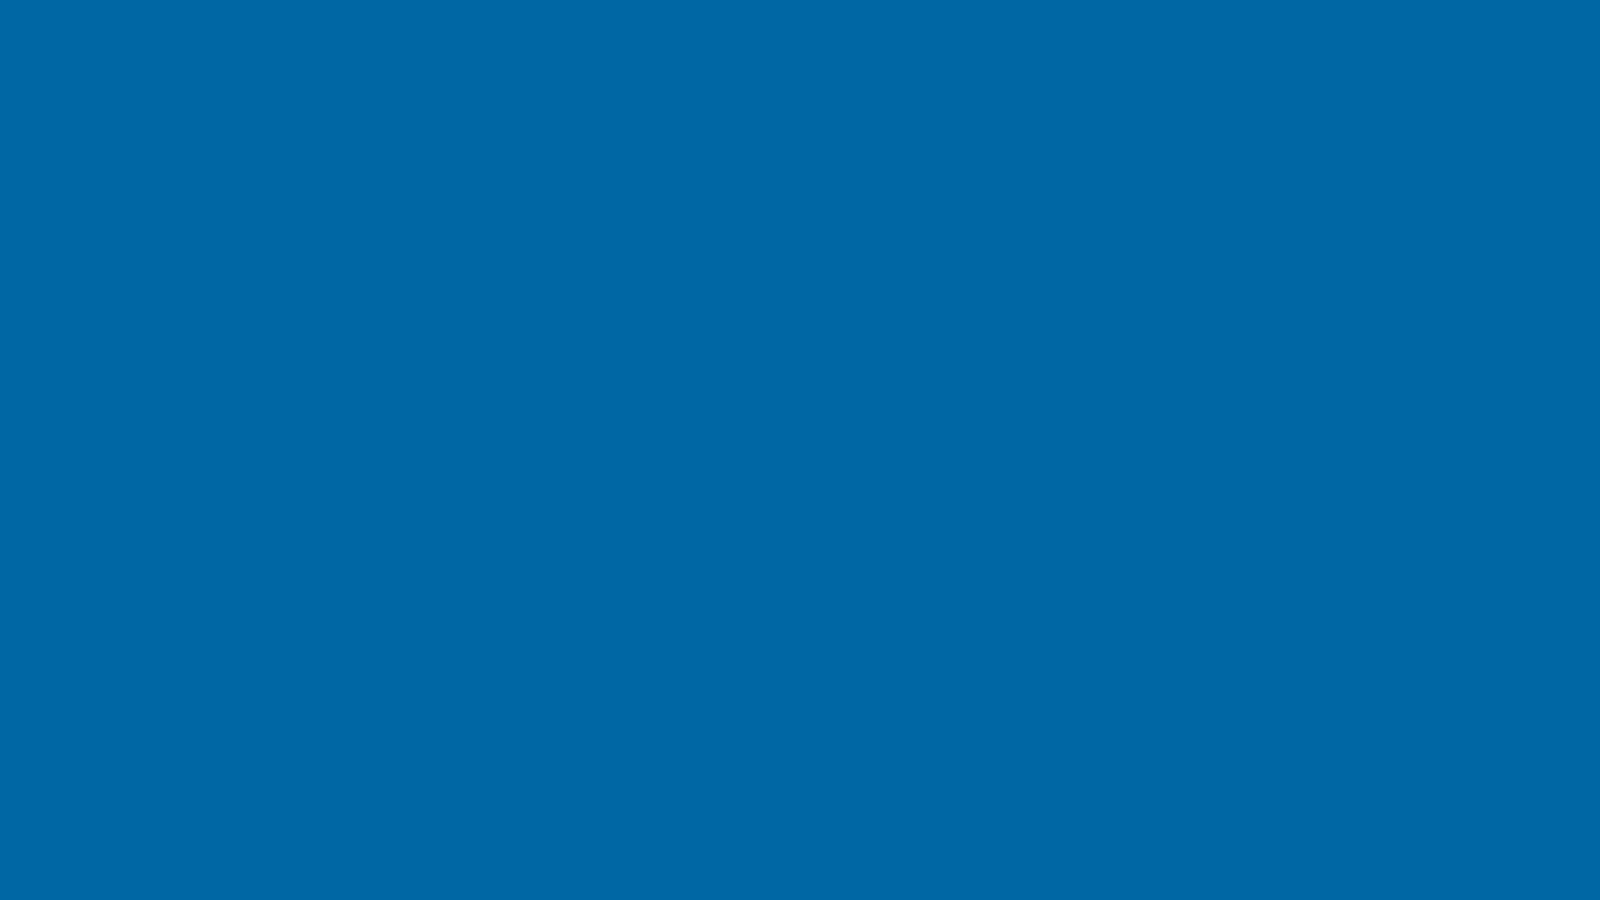 1600x900 Sapphire Blue Solid Color Background